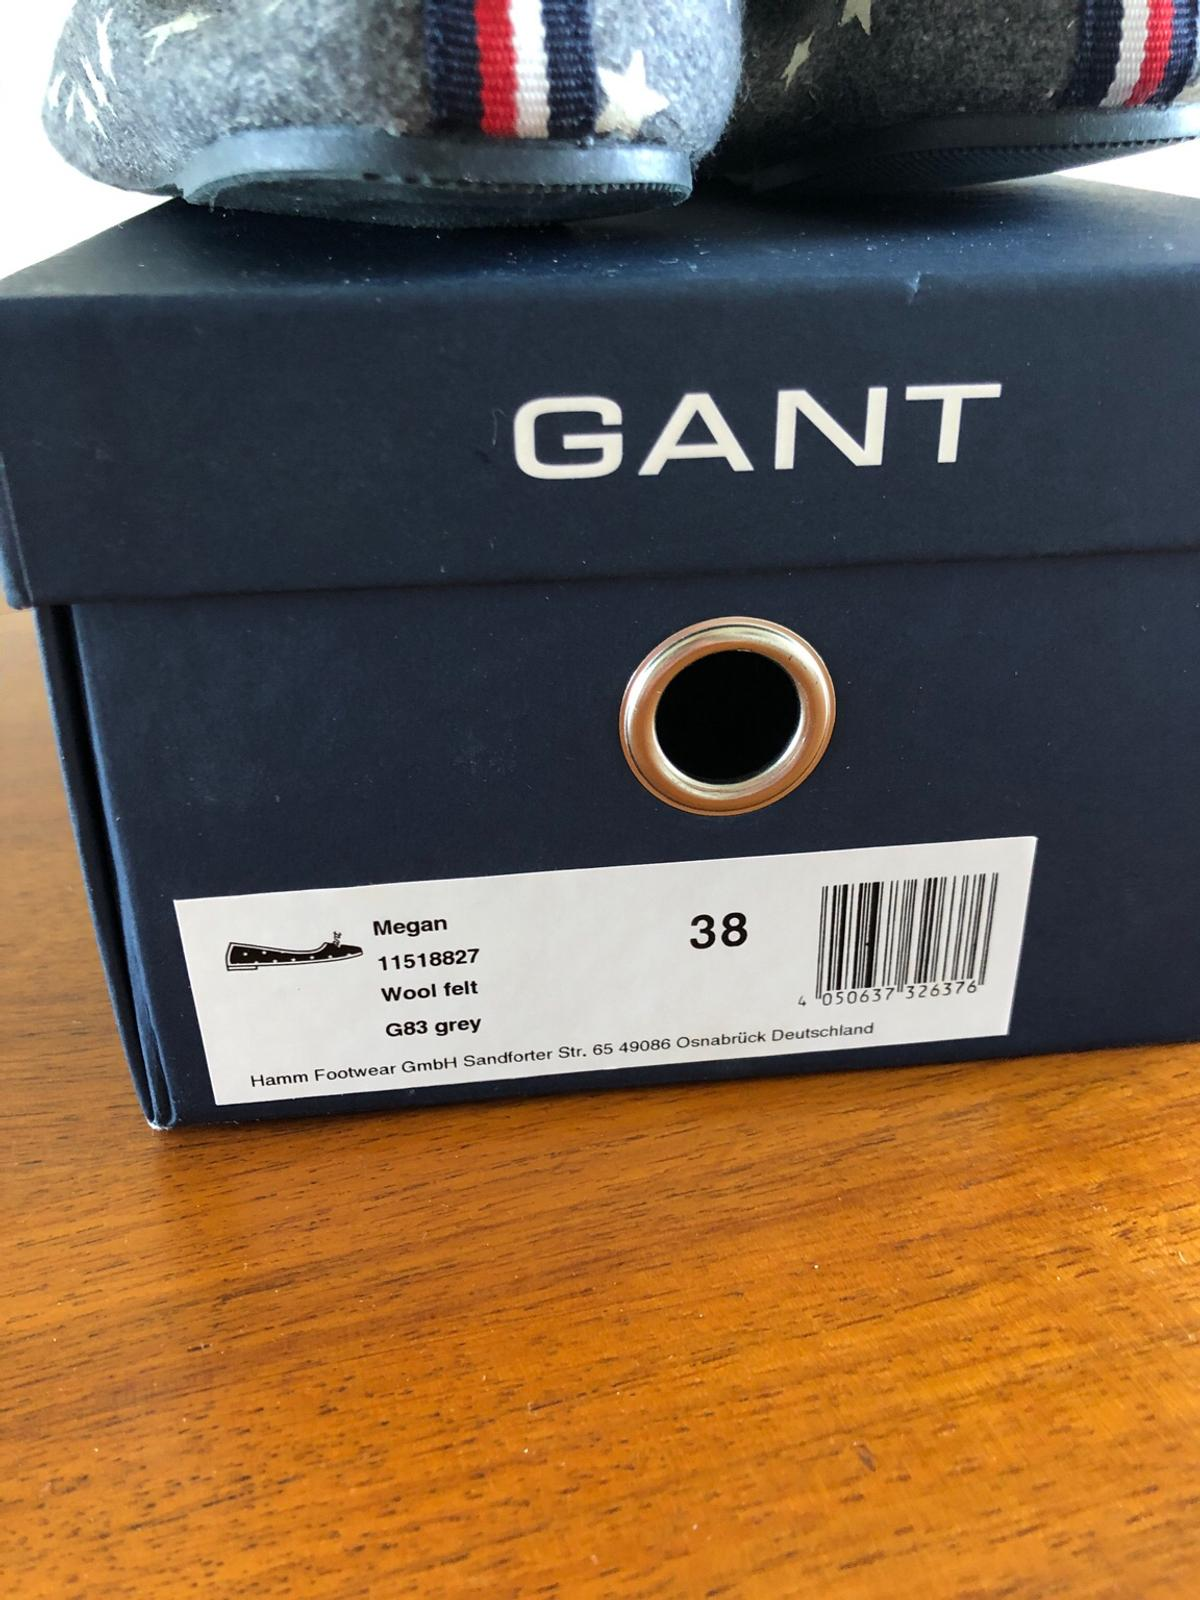 Never worn Gant slippers size 38 (more like a 37 though). With original box.